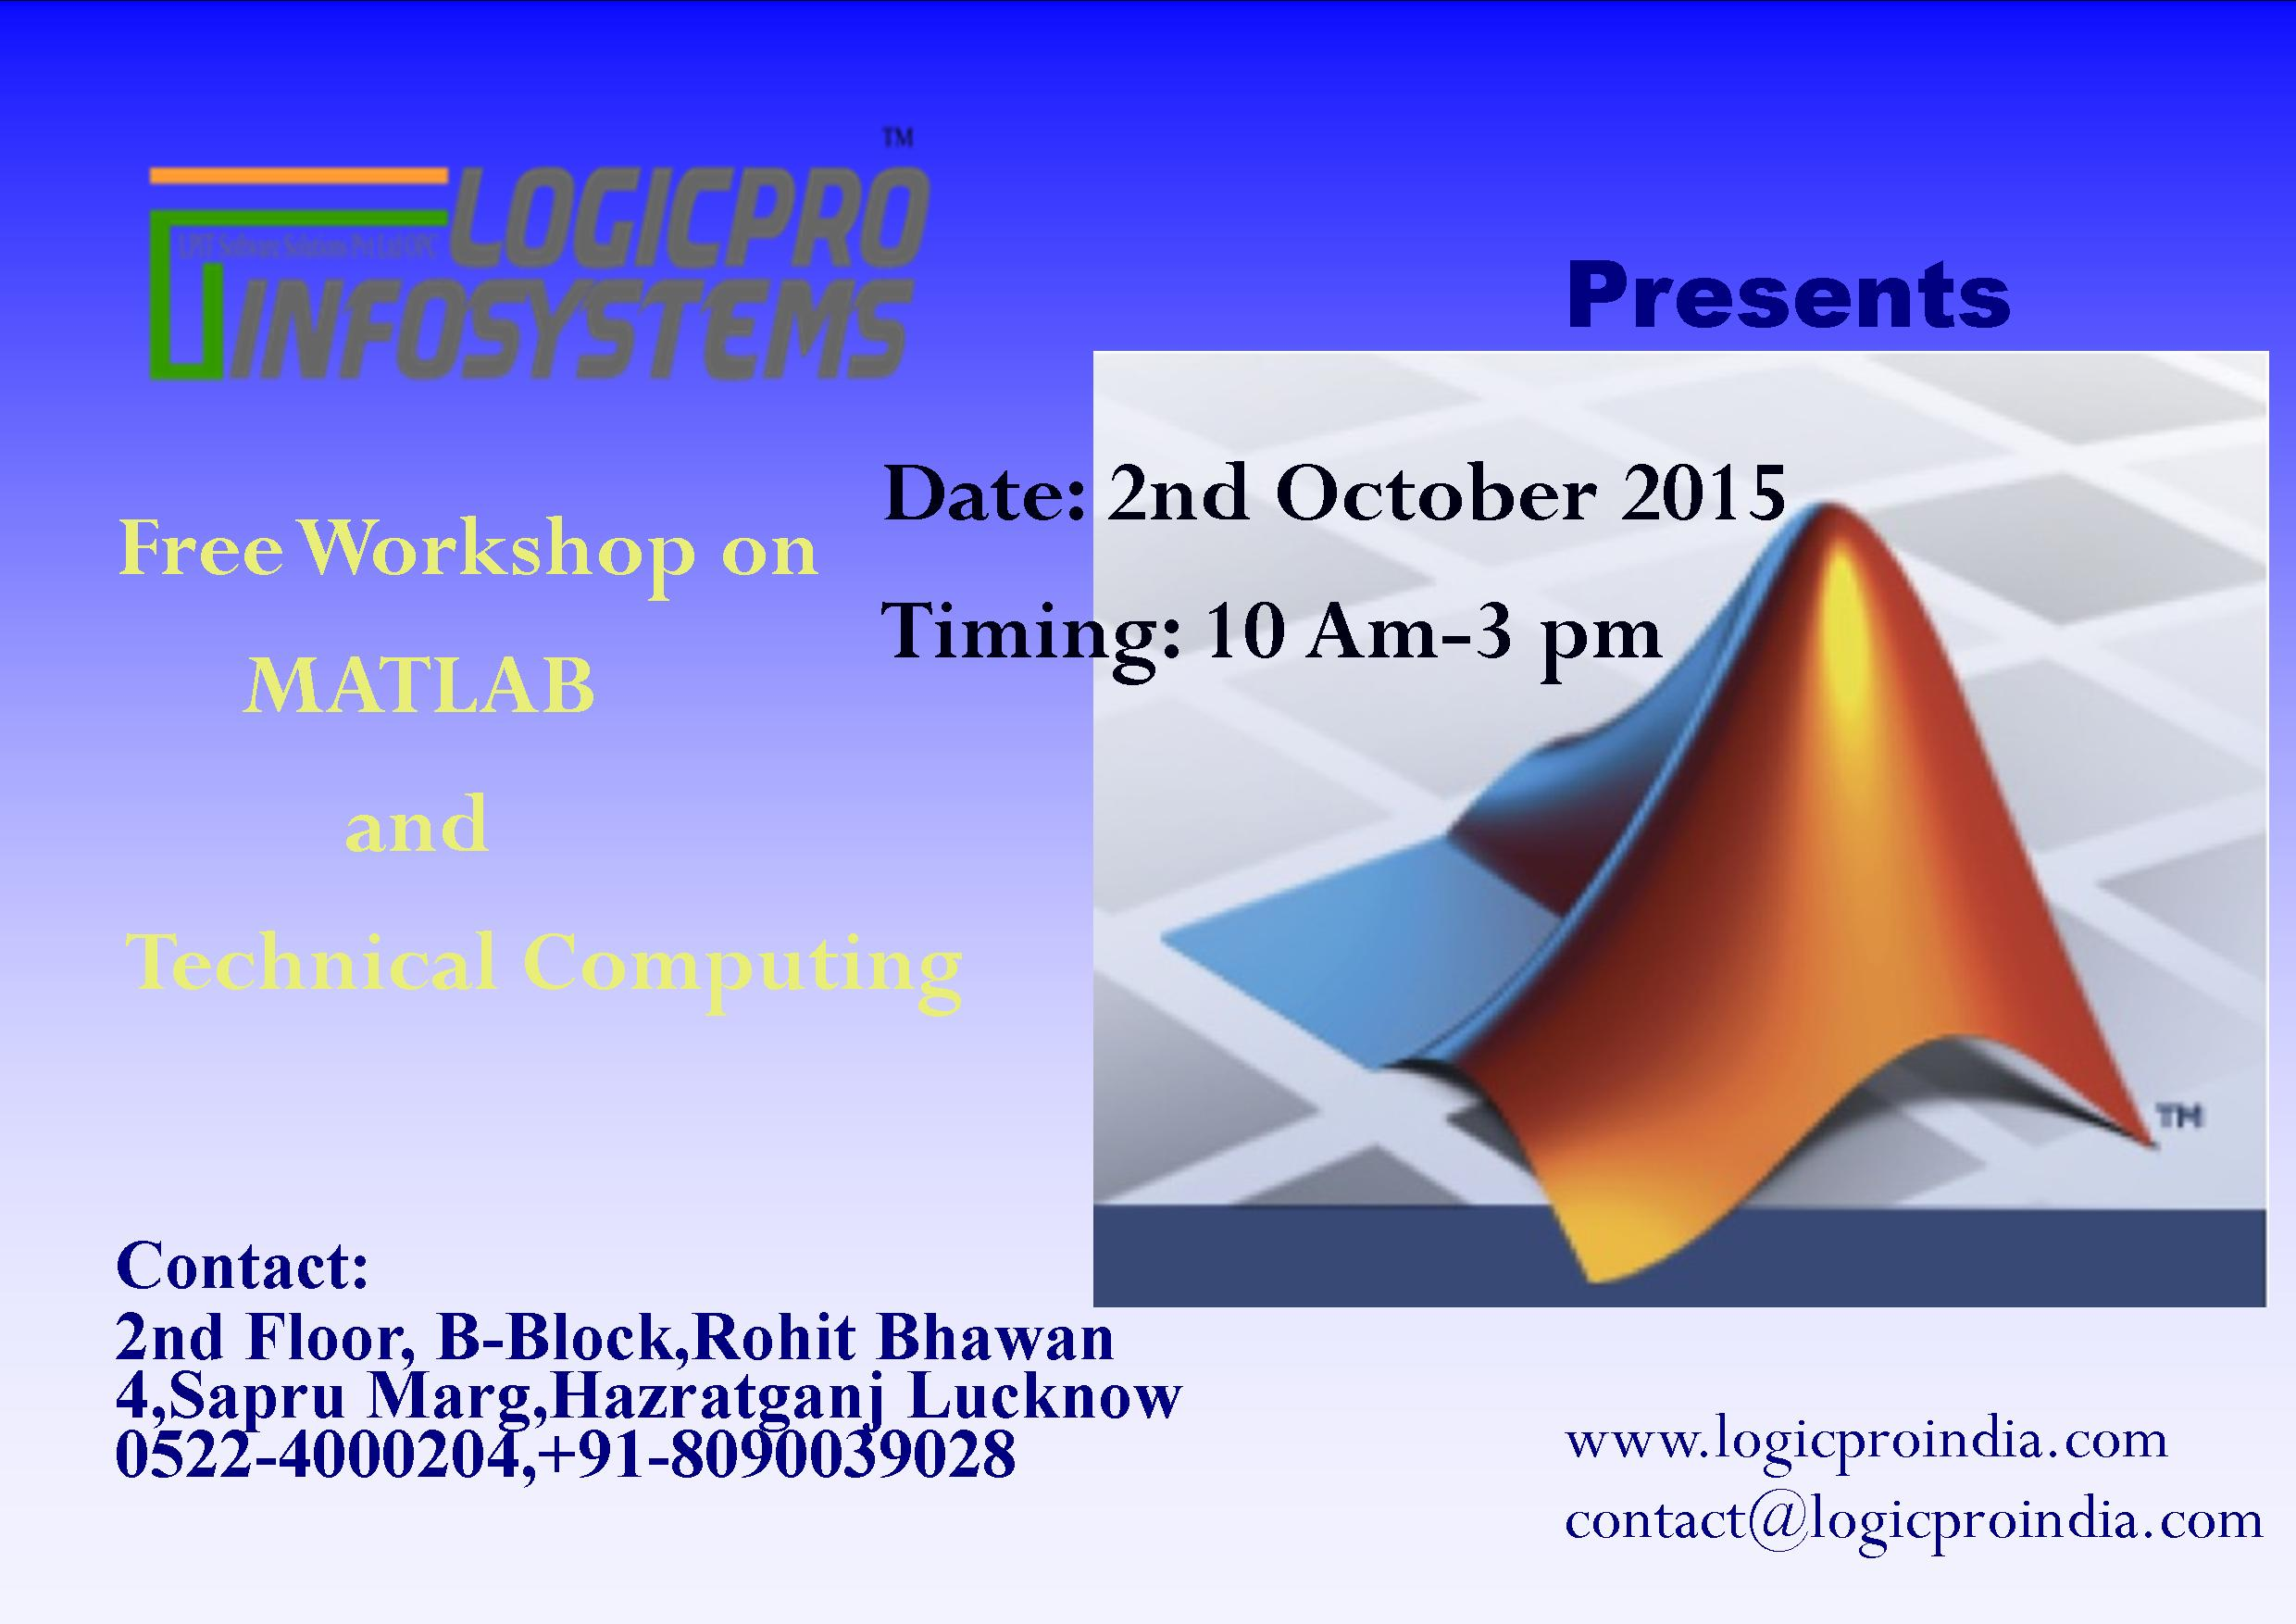 Free workshop on MATLAB and technical Computing